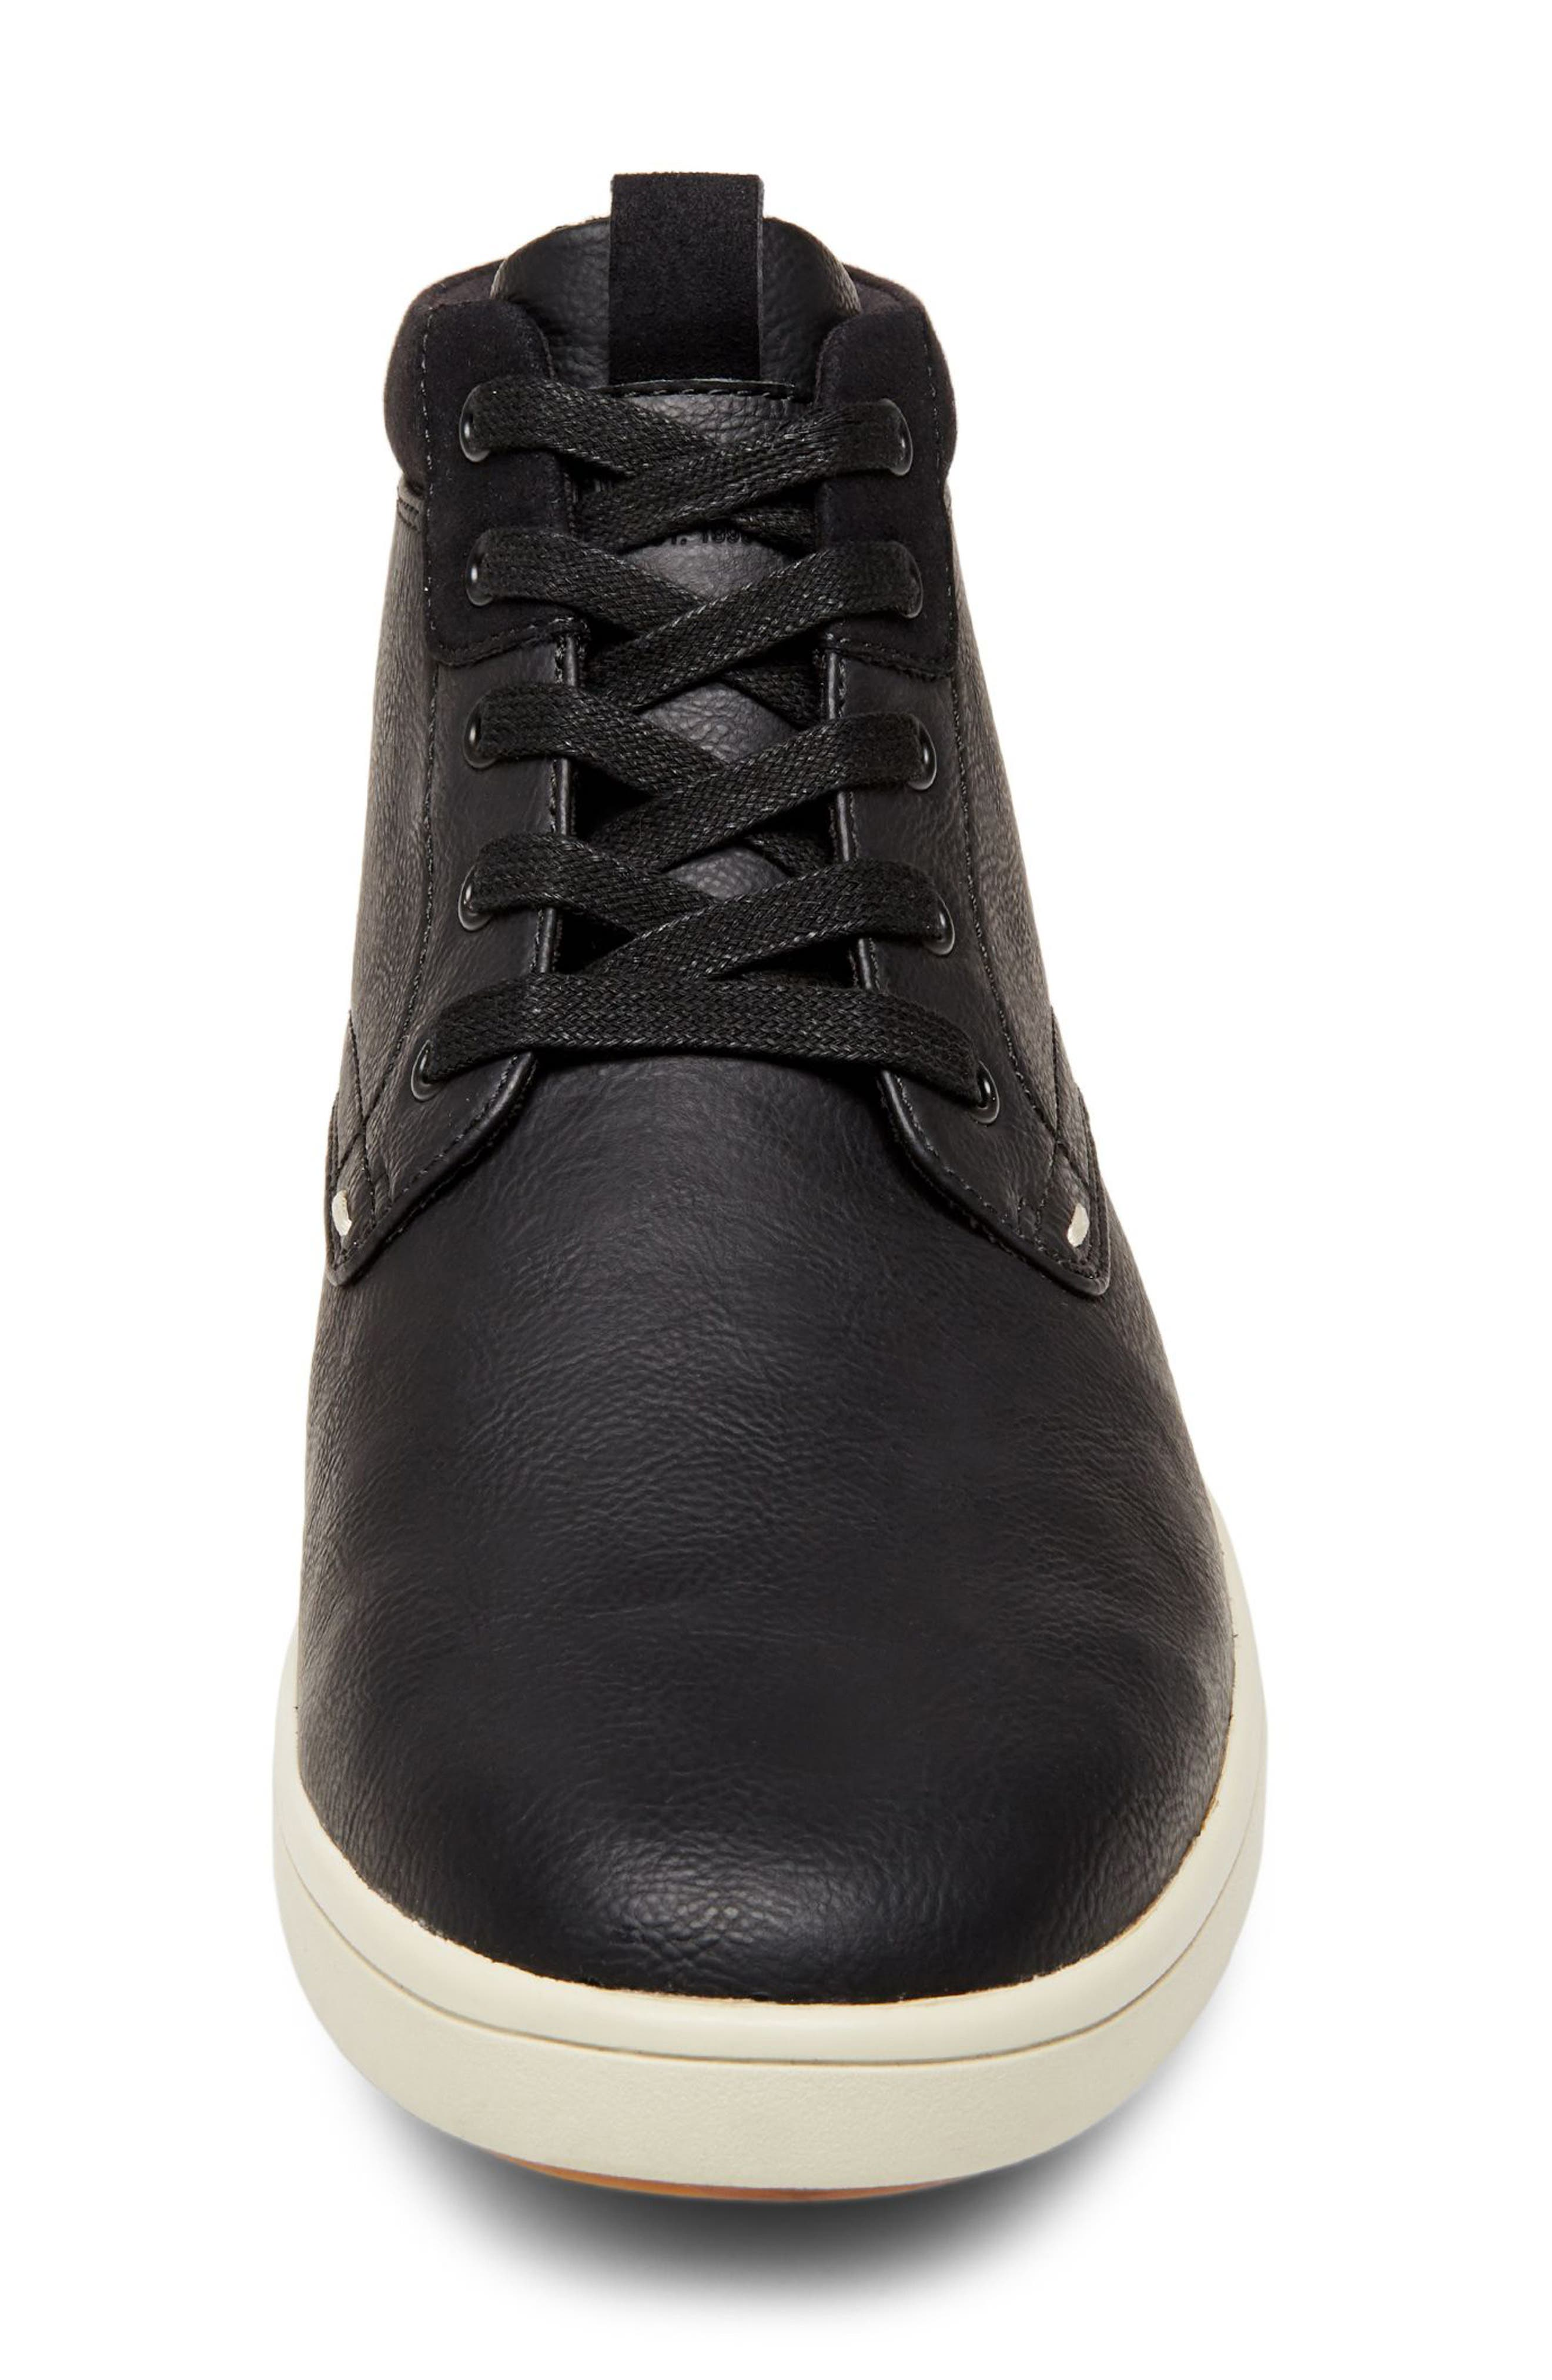 Forsyth High Top Sneaker,                             Alternate thumbnail 4, color,                             BLACK LEATHER